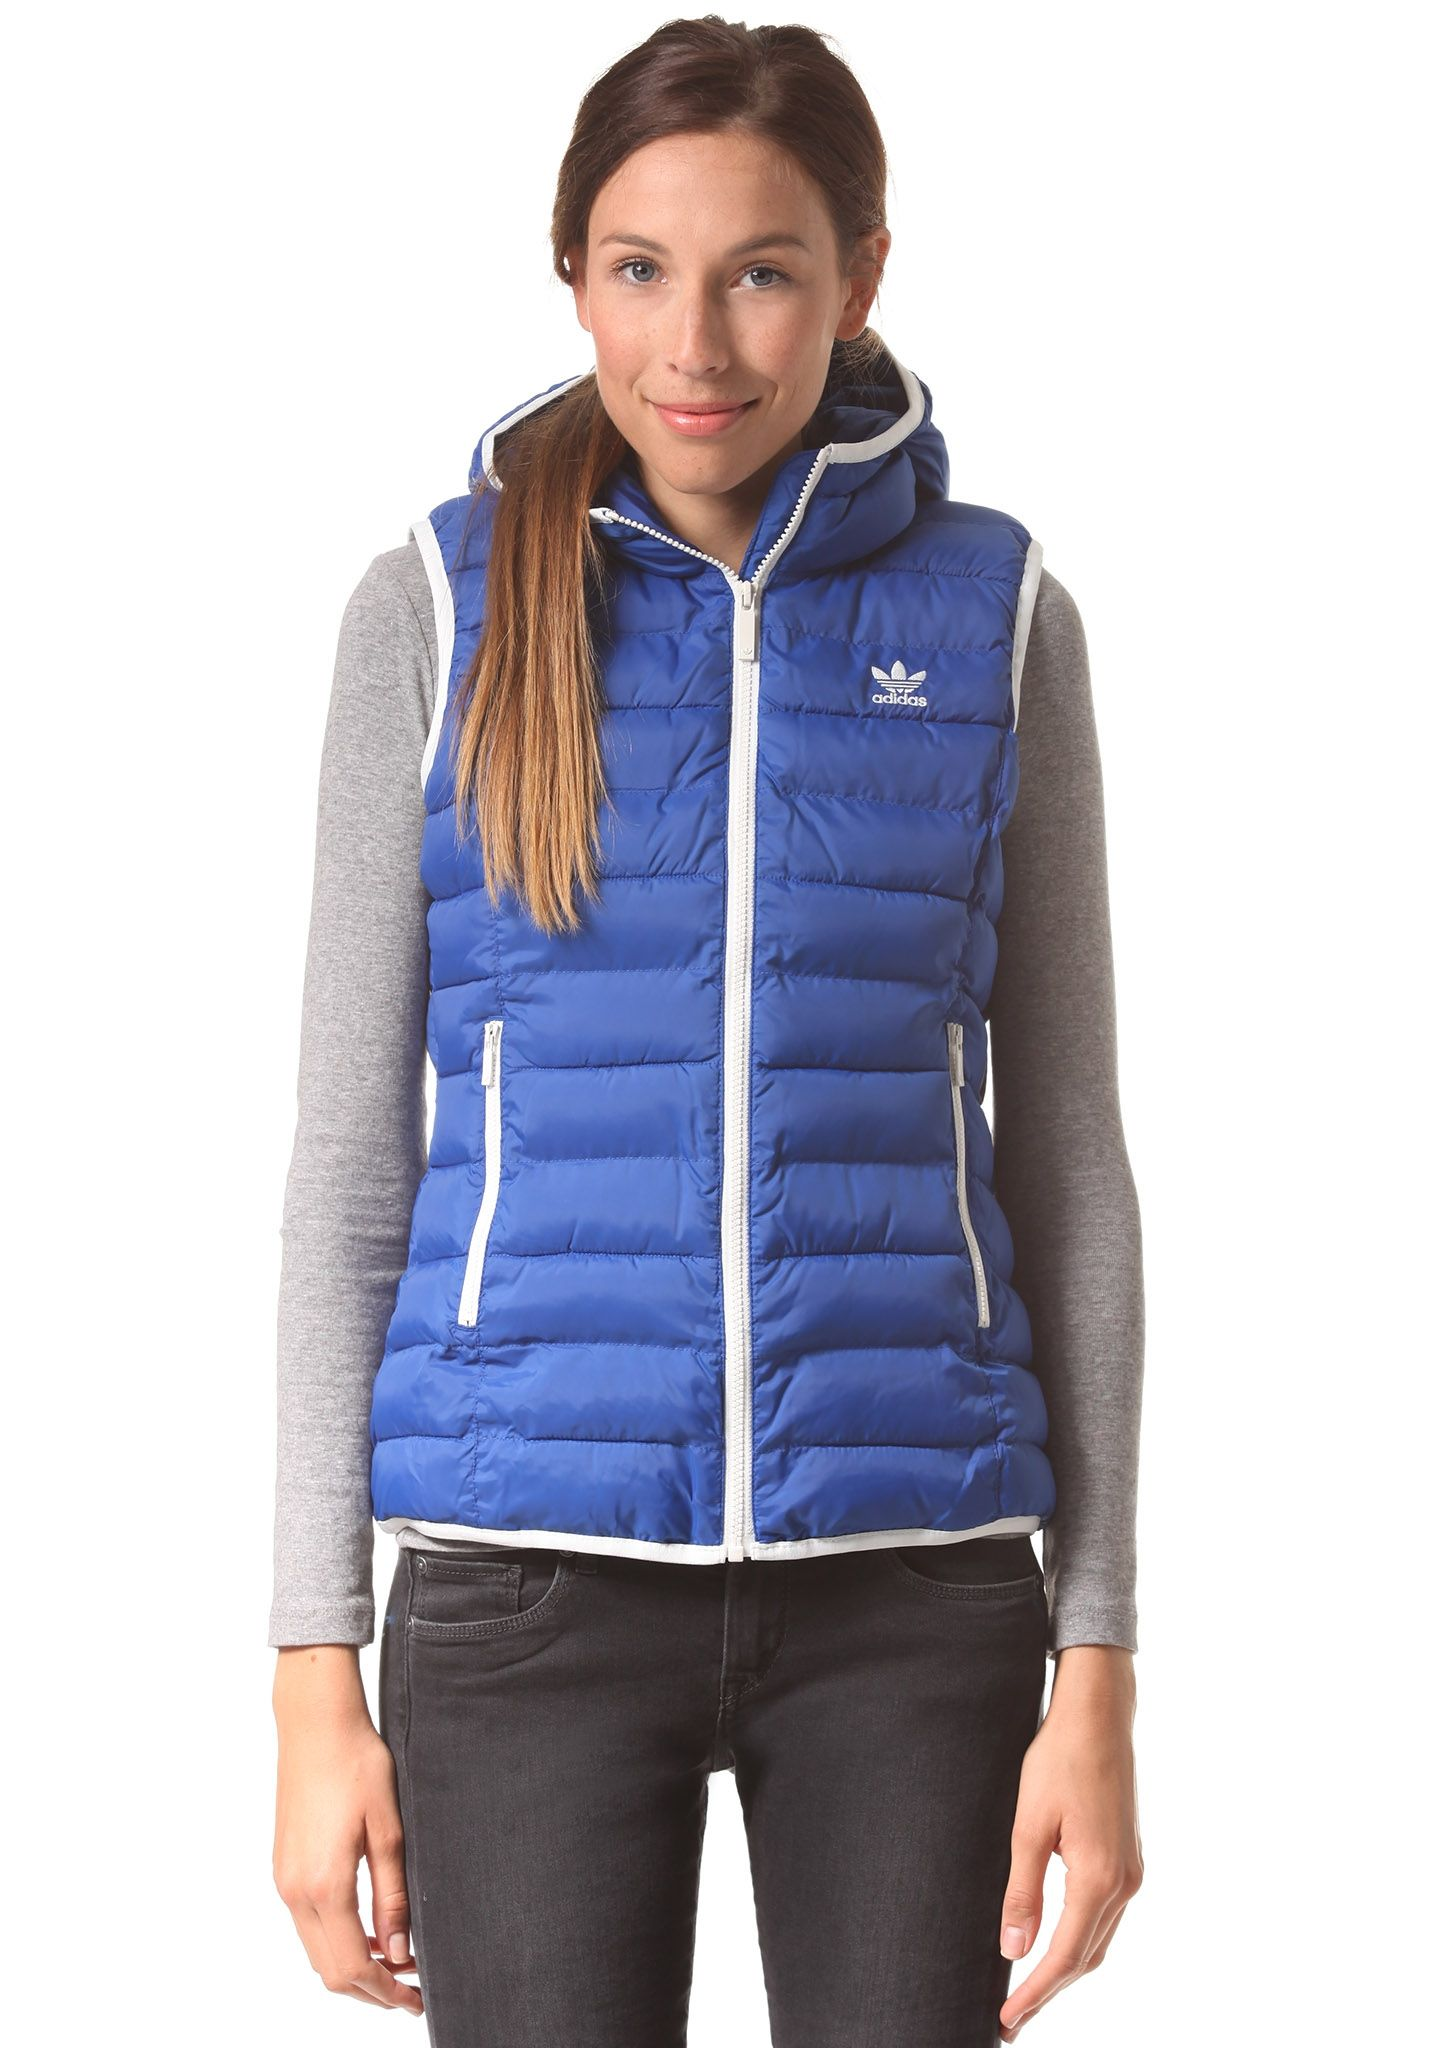 7d9f78c6e114 adidas Originals Slim - Outdoorweste für Damen - Blau - Planet Sports